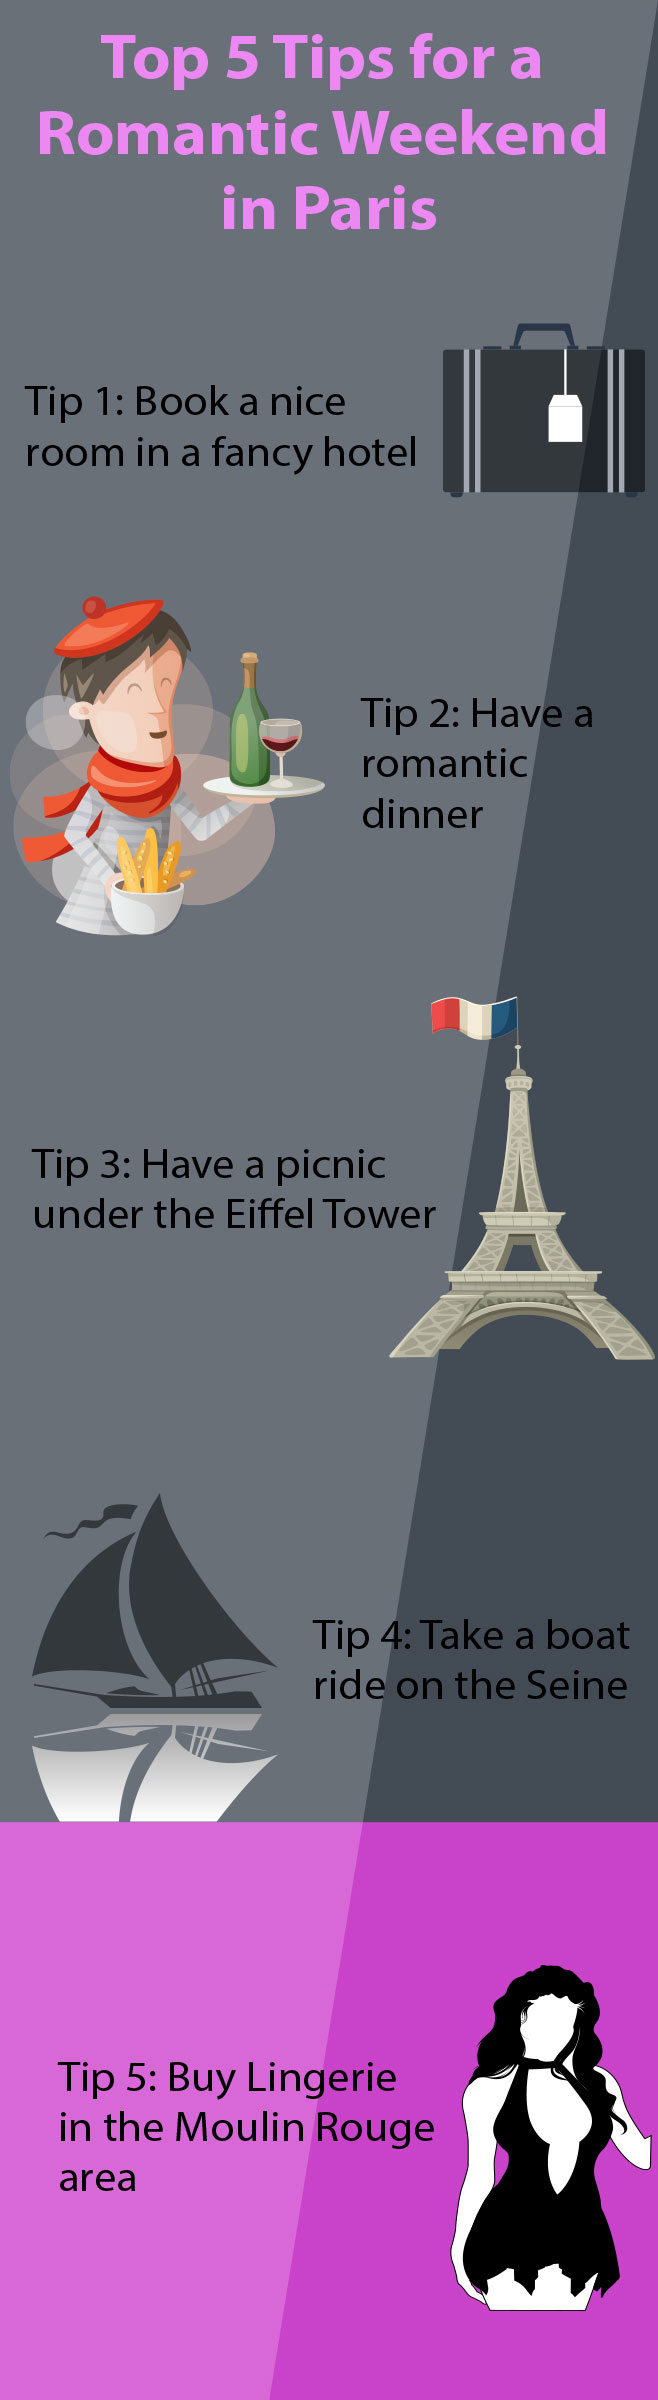 most Romantic things to do in Paris infographic